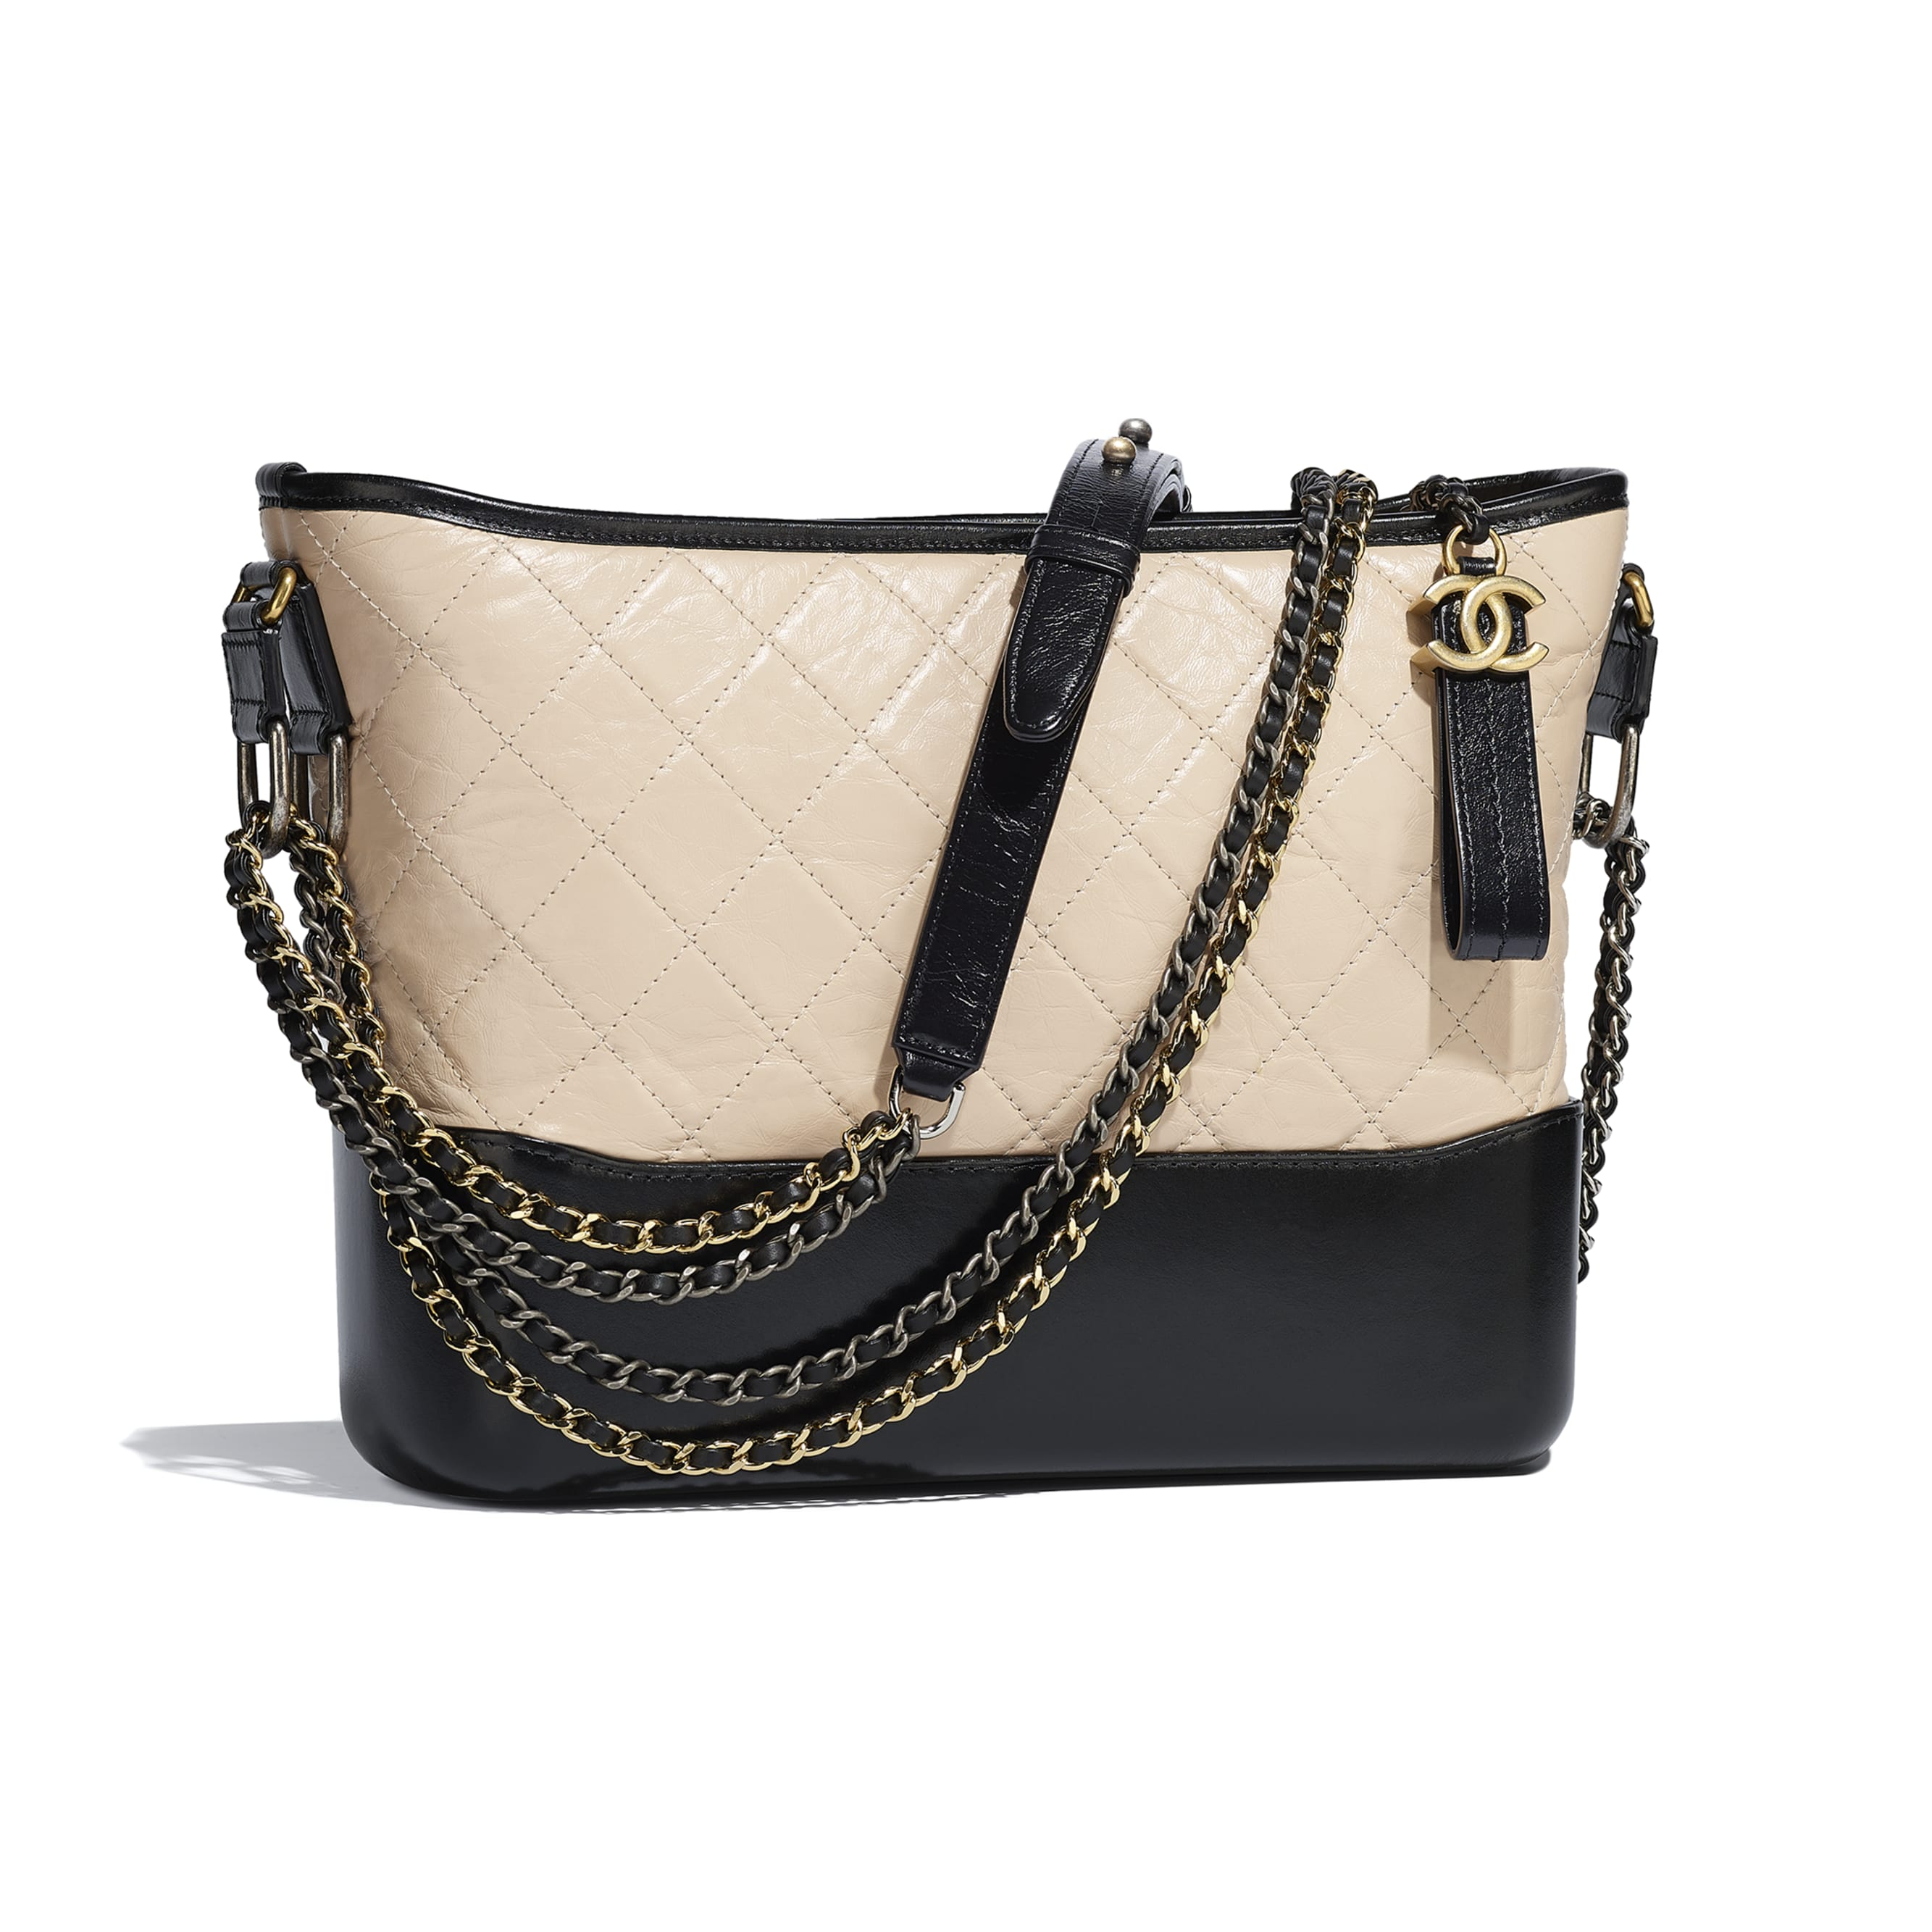 CHANEL'S GABRIELLE Large Hobo Bag - Beige & Black - Aged Calfskin, Smooth Calfskin, Silver-Tone & Gold-Tone Metal - Other view - see standard sized version